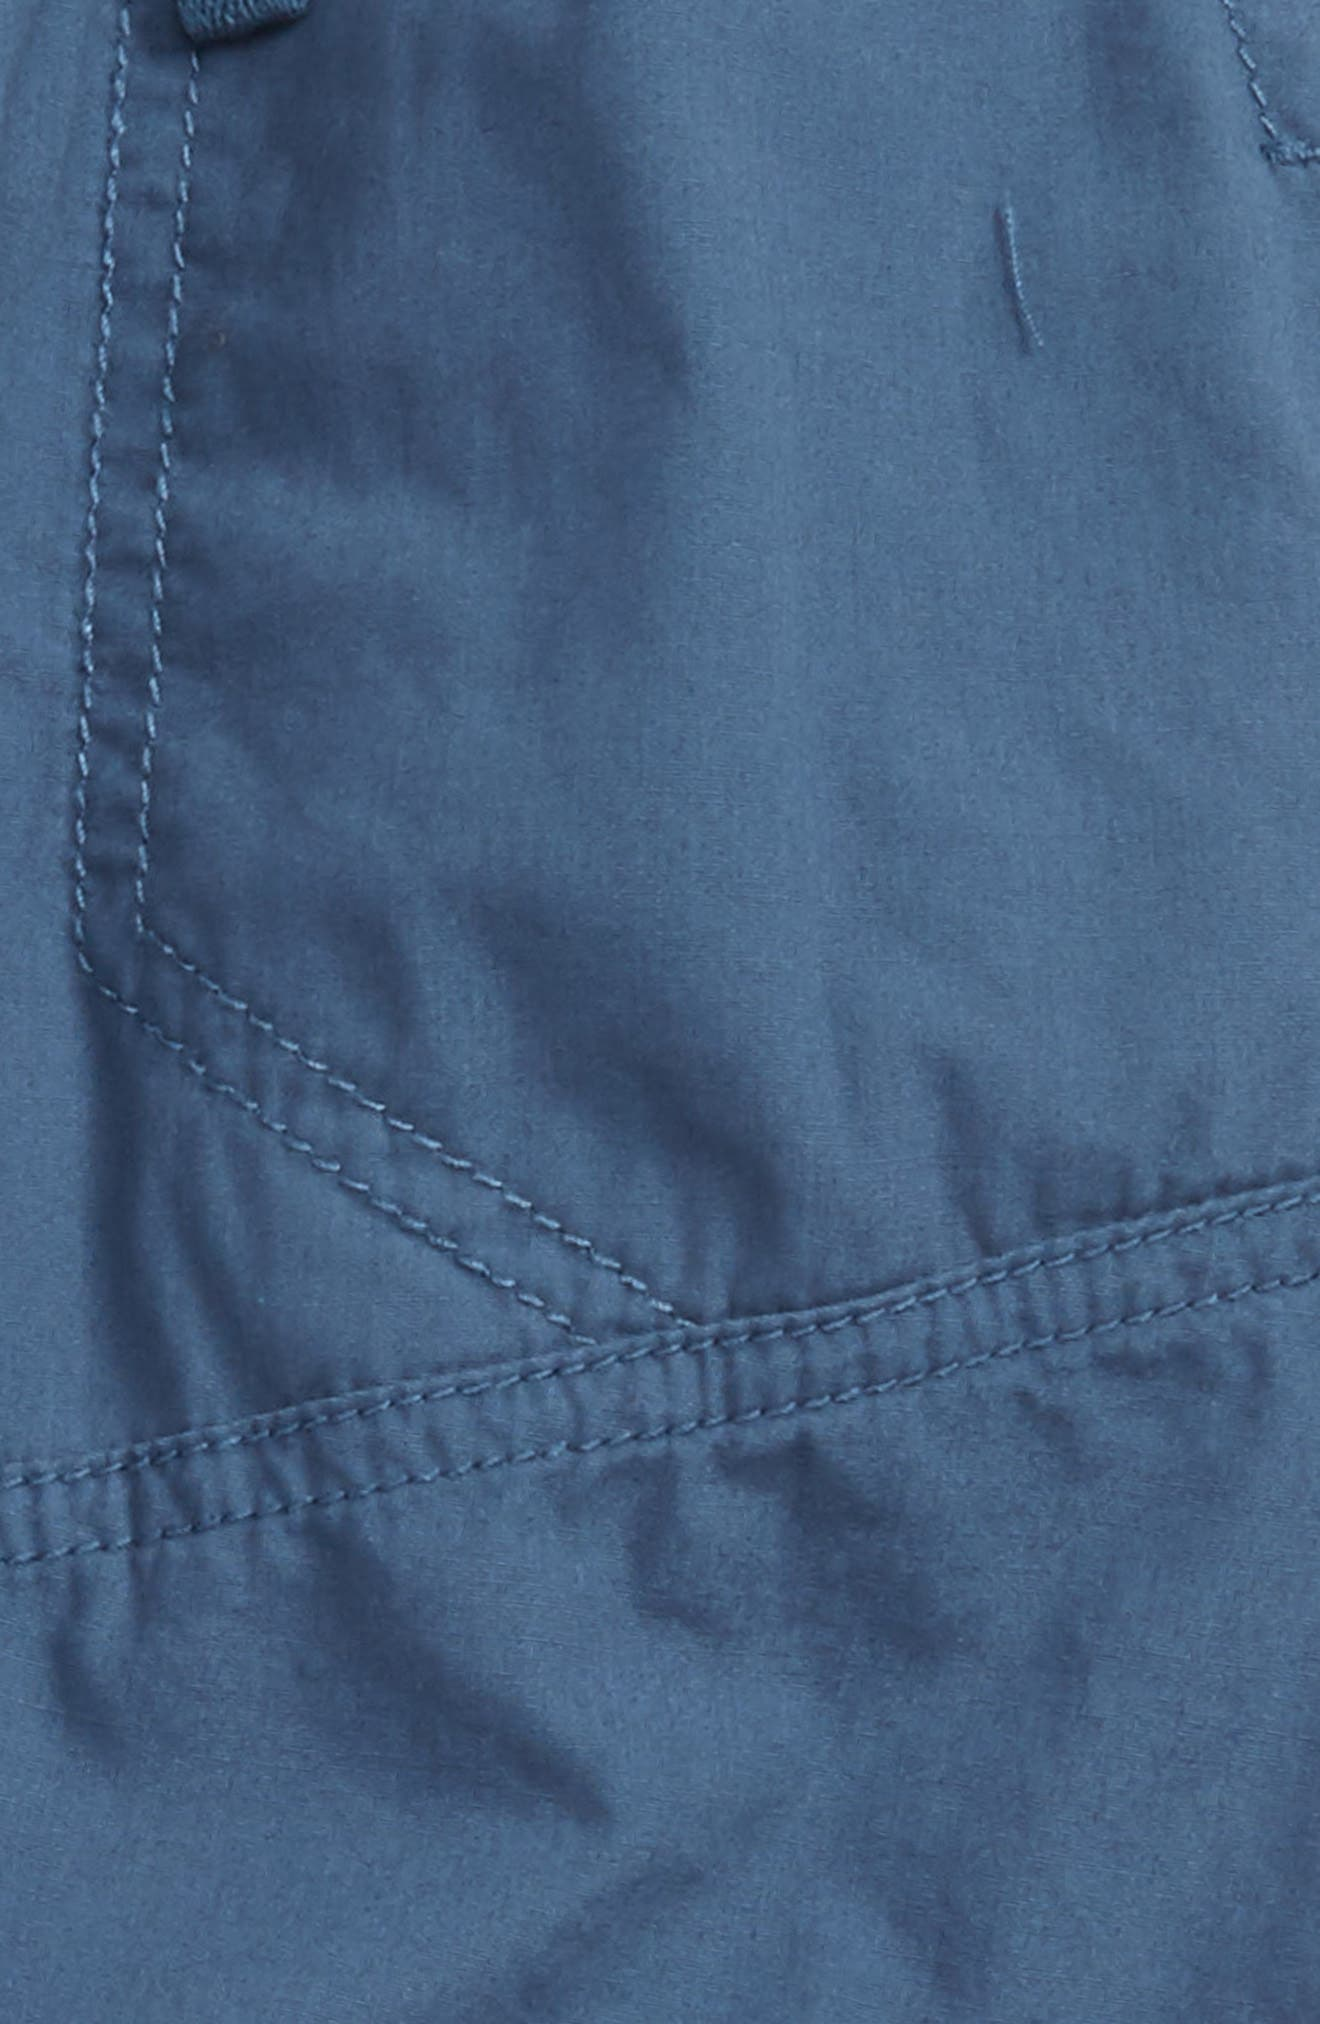 Jersey Lined Pants,                             Alternate thumbnail 6, color,